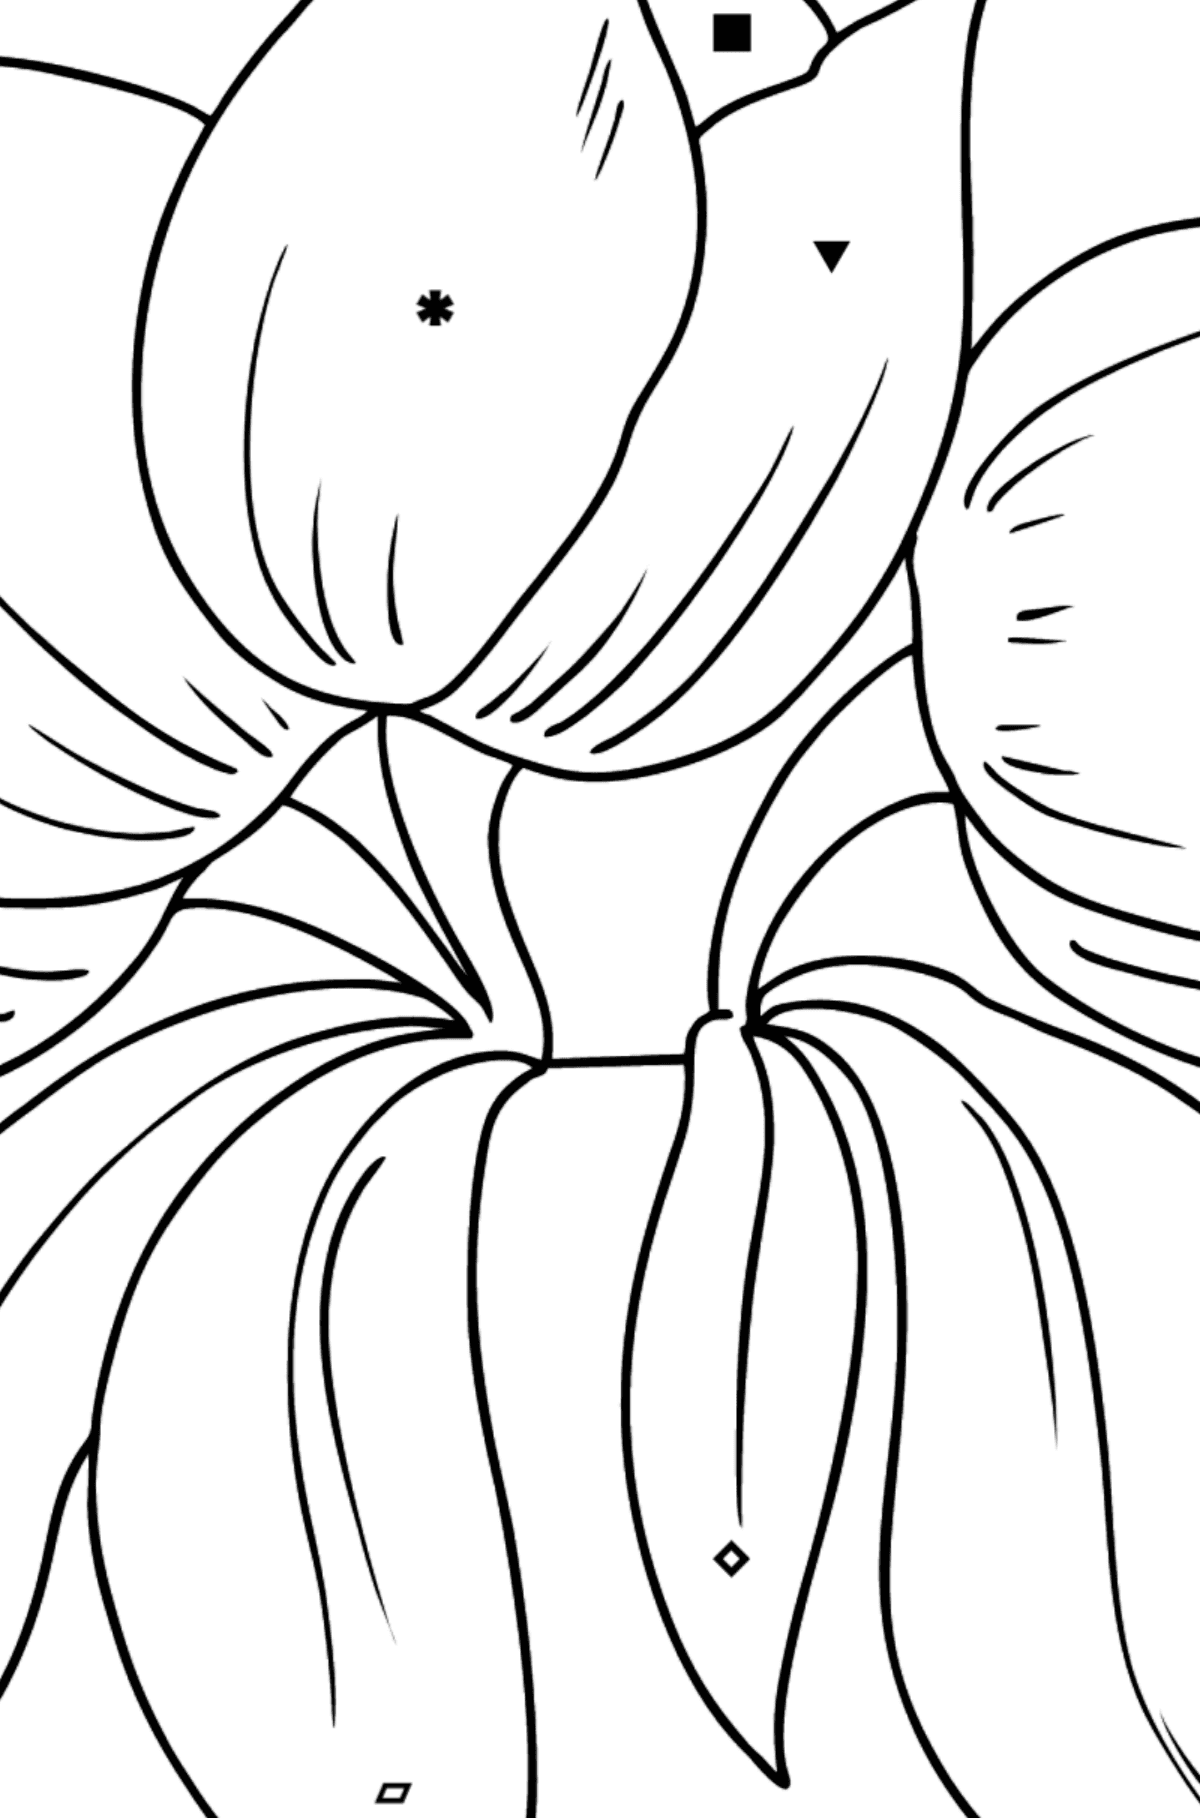 Flower Coloring Page - Tulips - Coloring by Symbols and Geometric Shapes for Kids